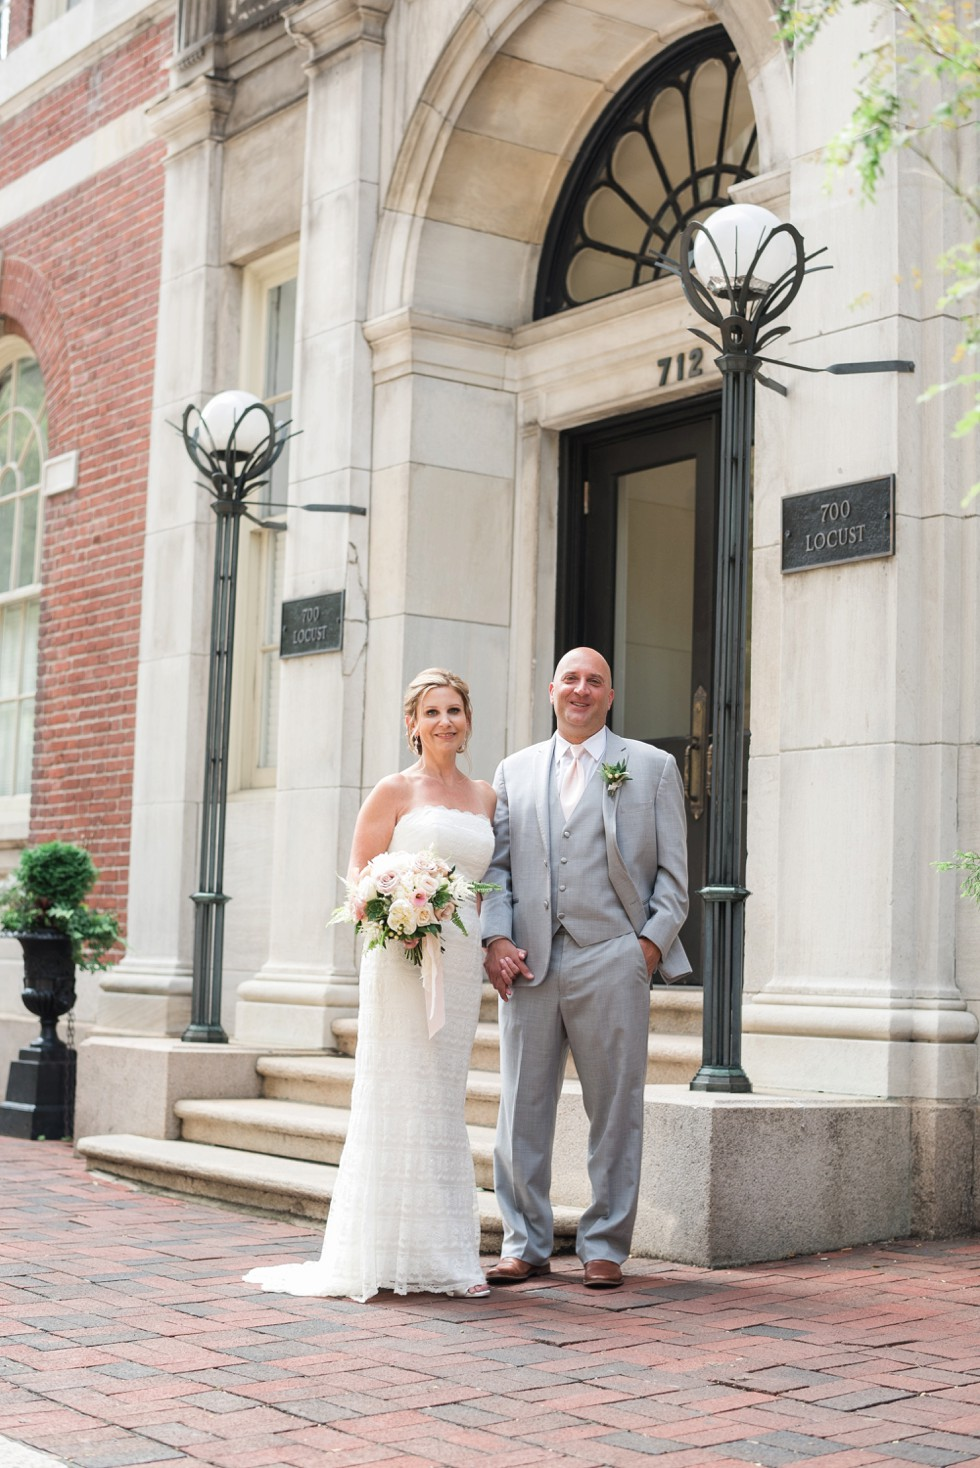 Talulas-Garden-Wedding-in-Philadelphia_0008